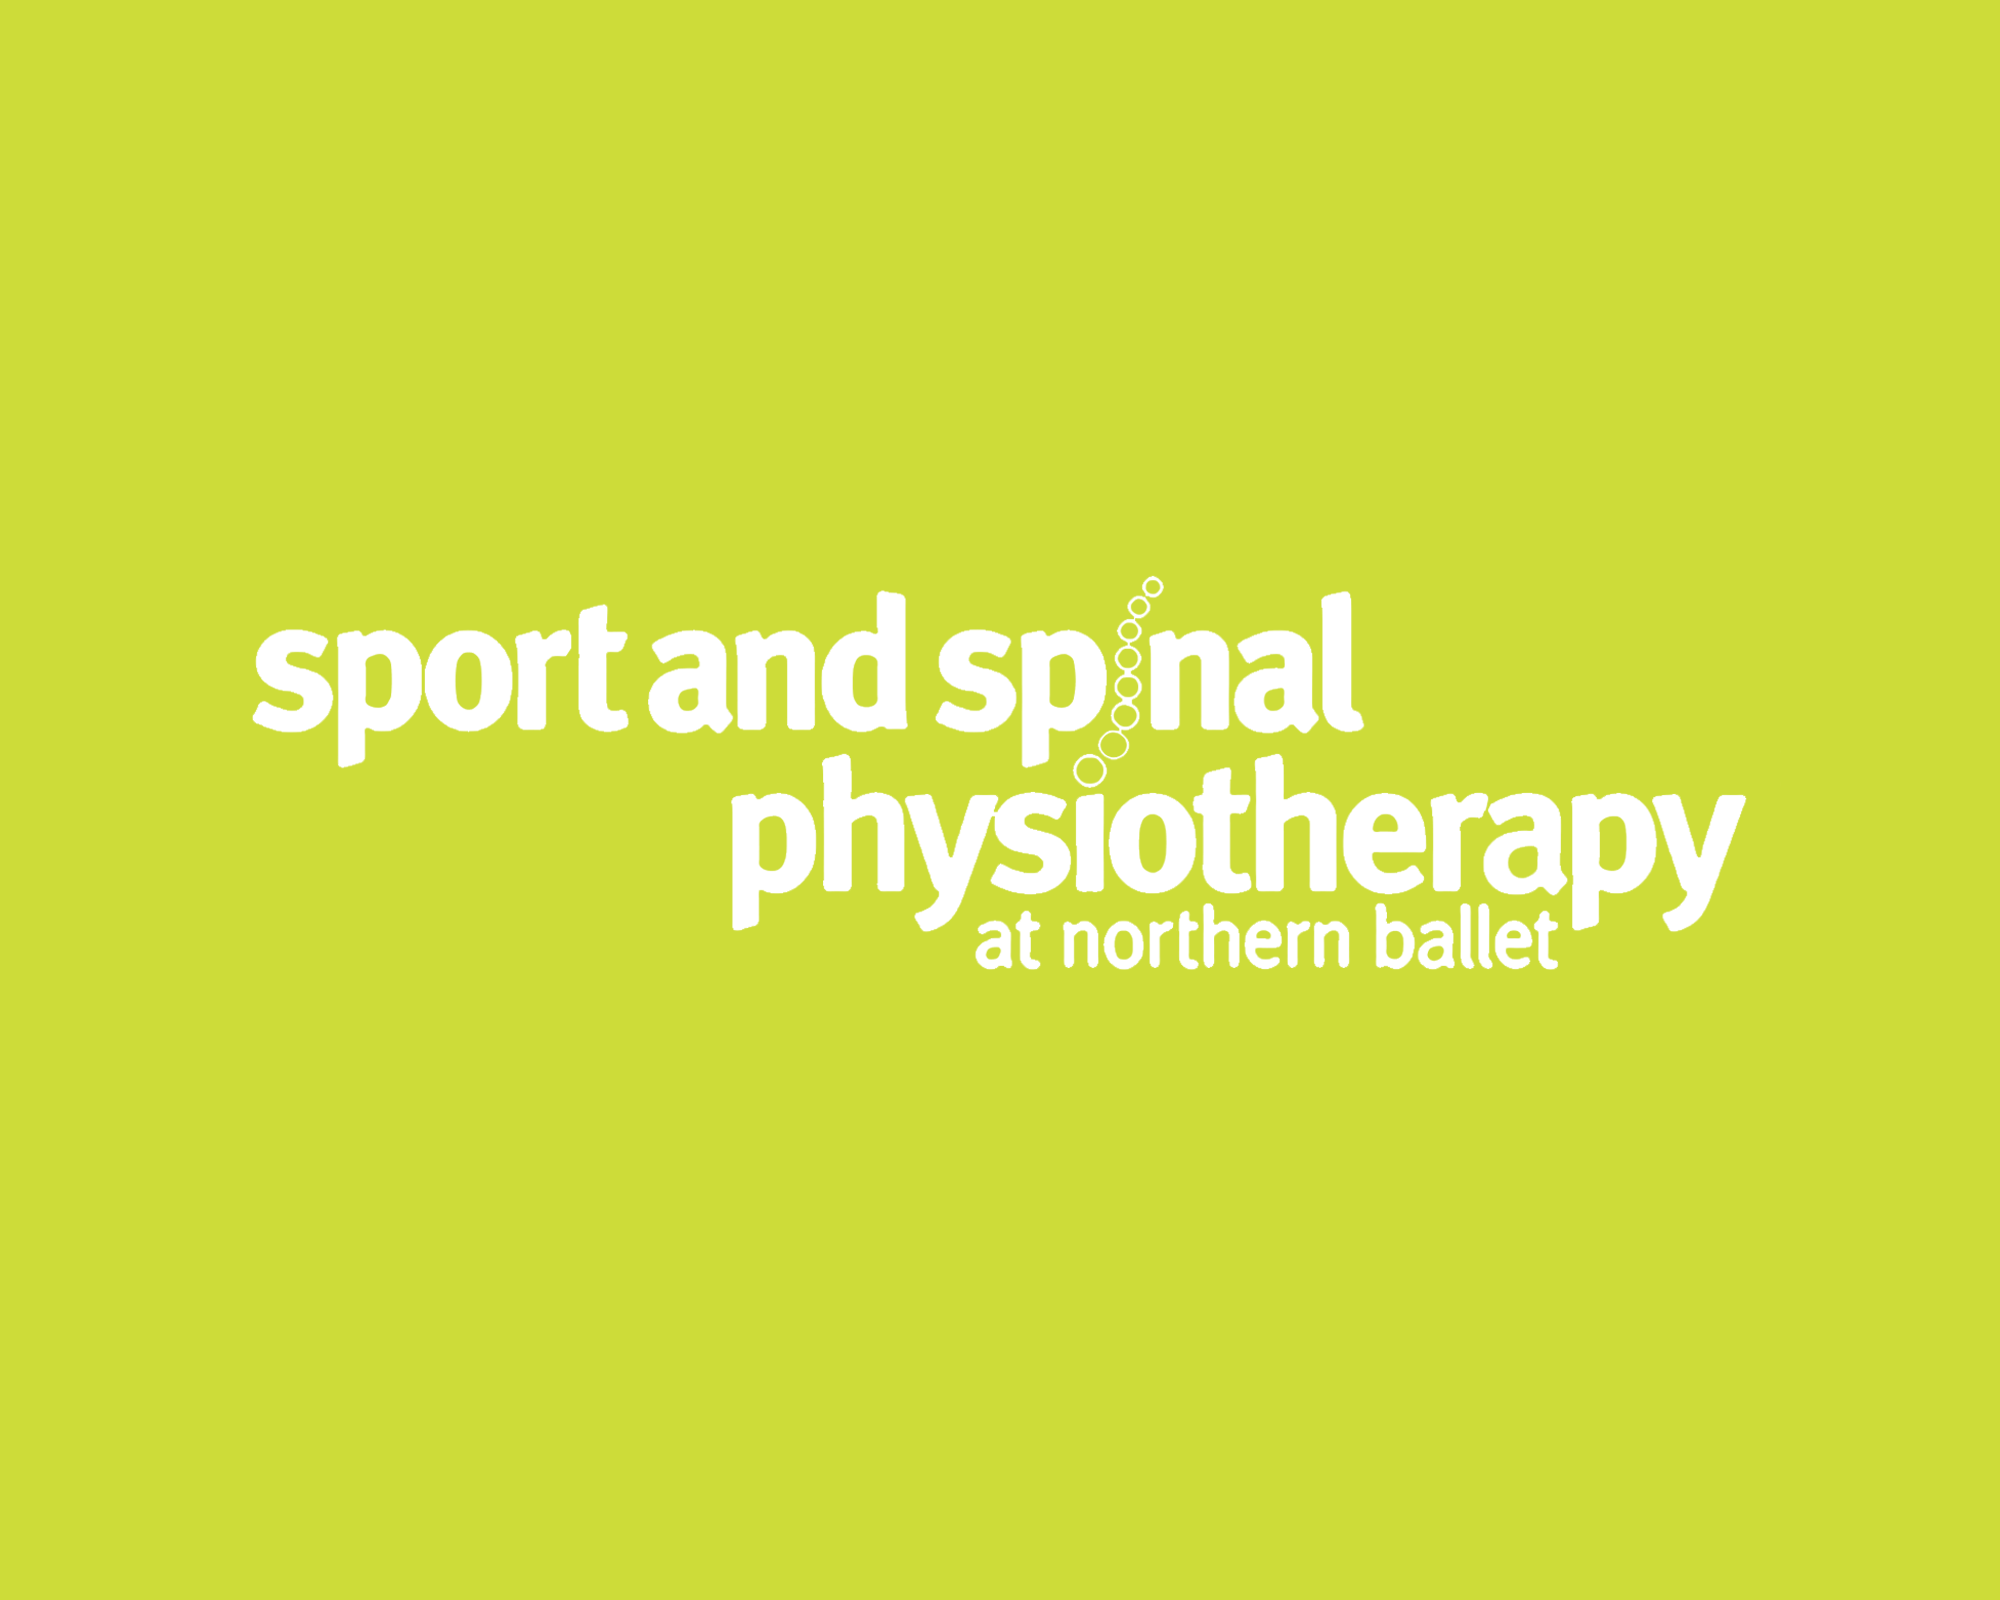 sport and spinal physiotherapy Logo